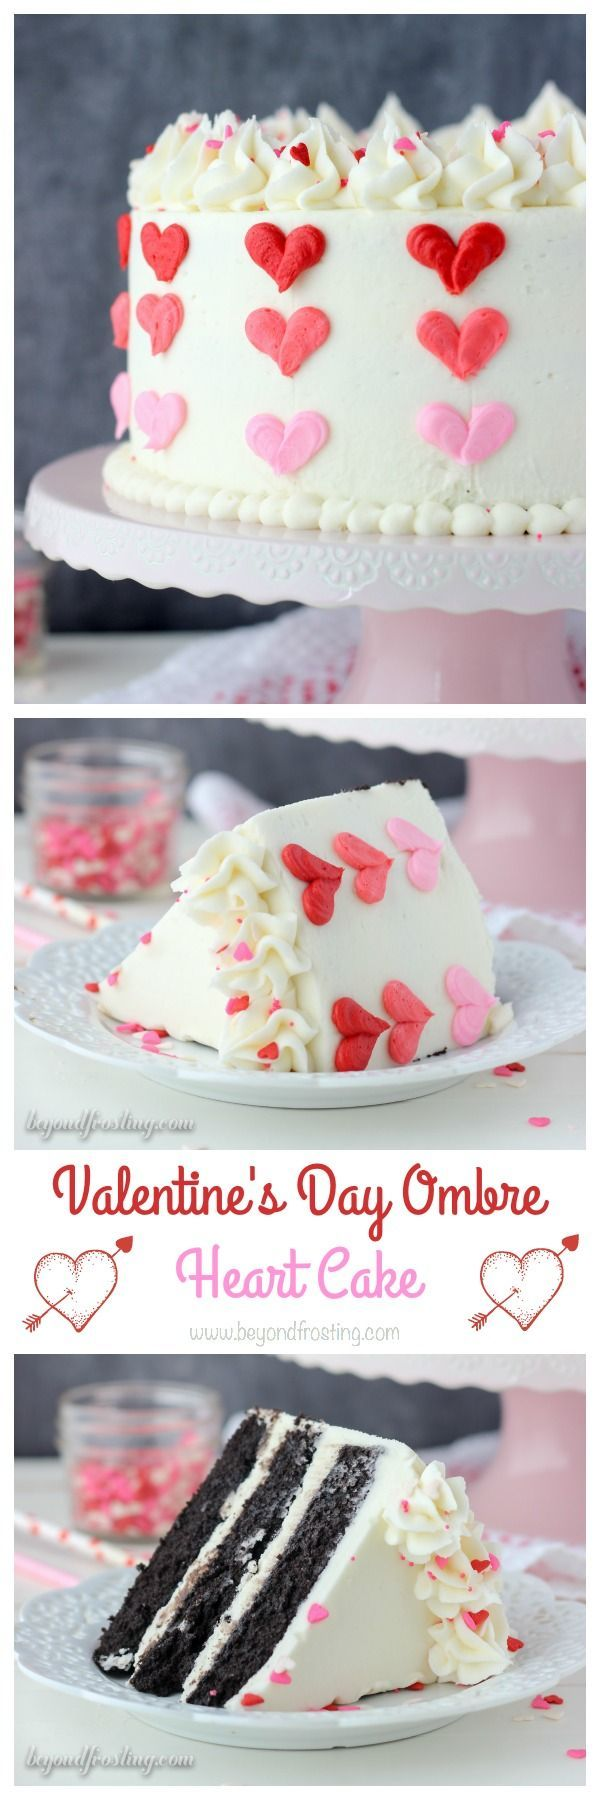 Follow these few easy tips to make this adorable Valentine's Day Ombre Heart Cake.